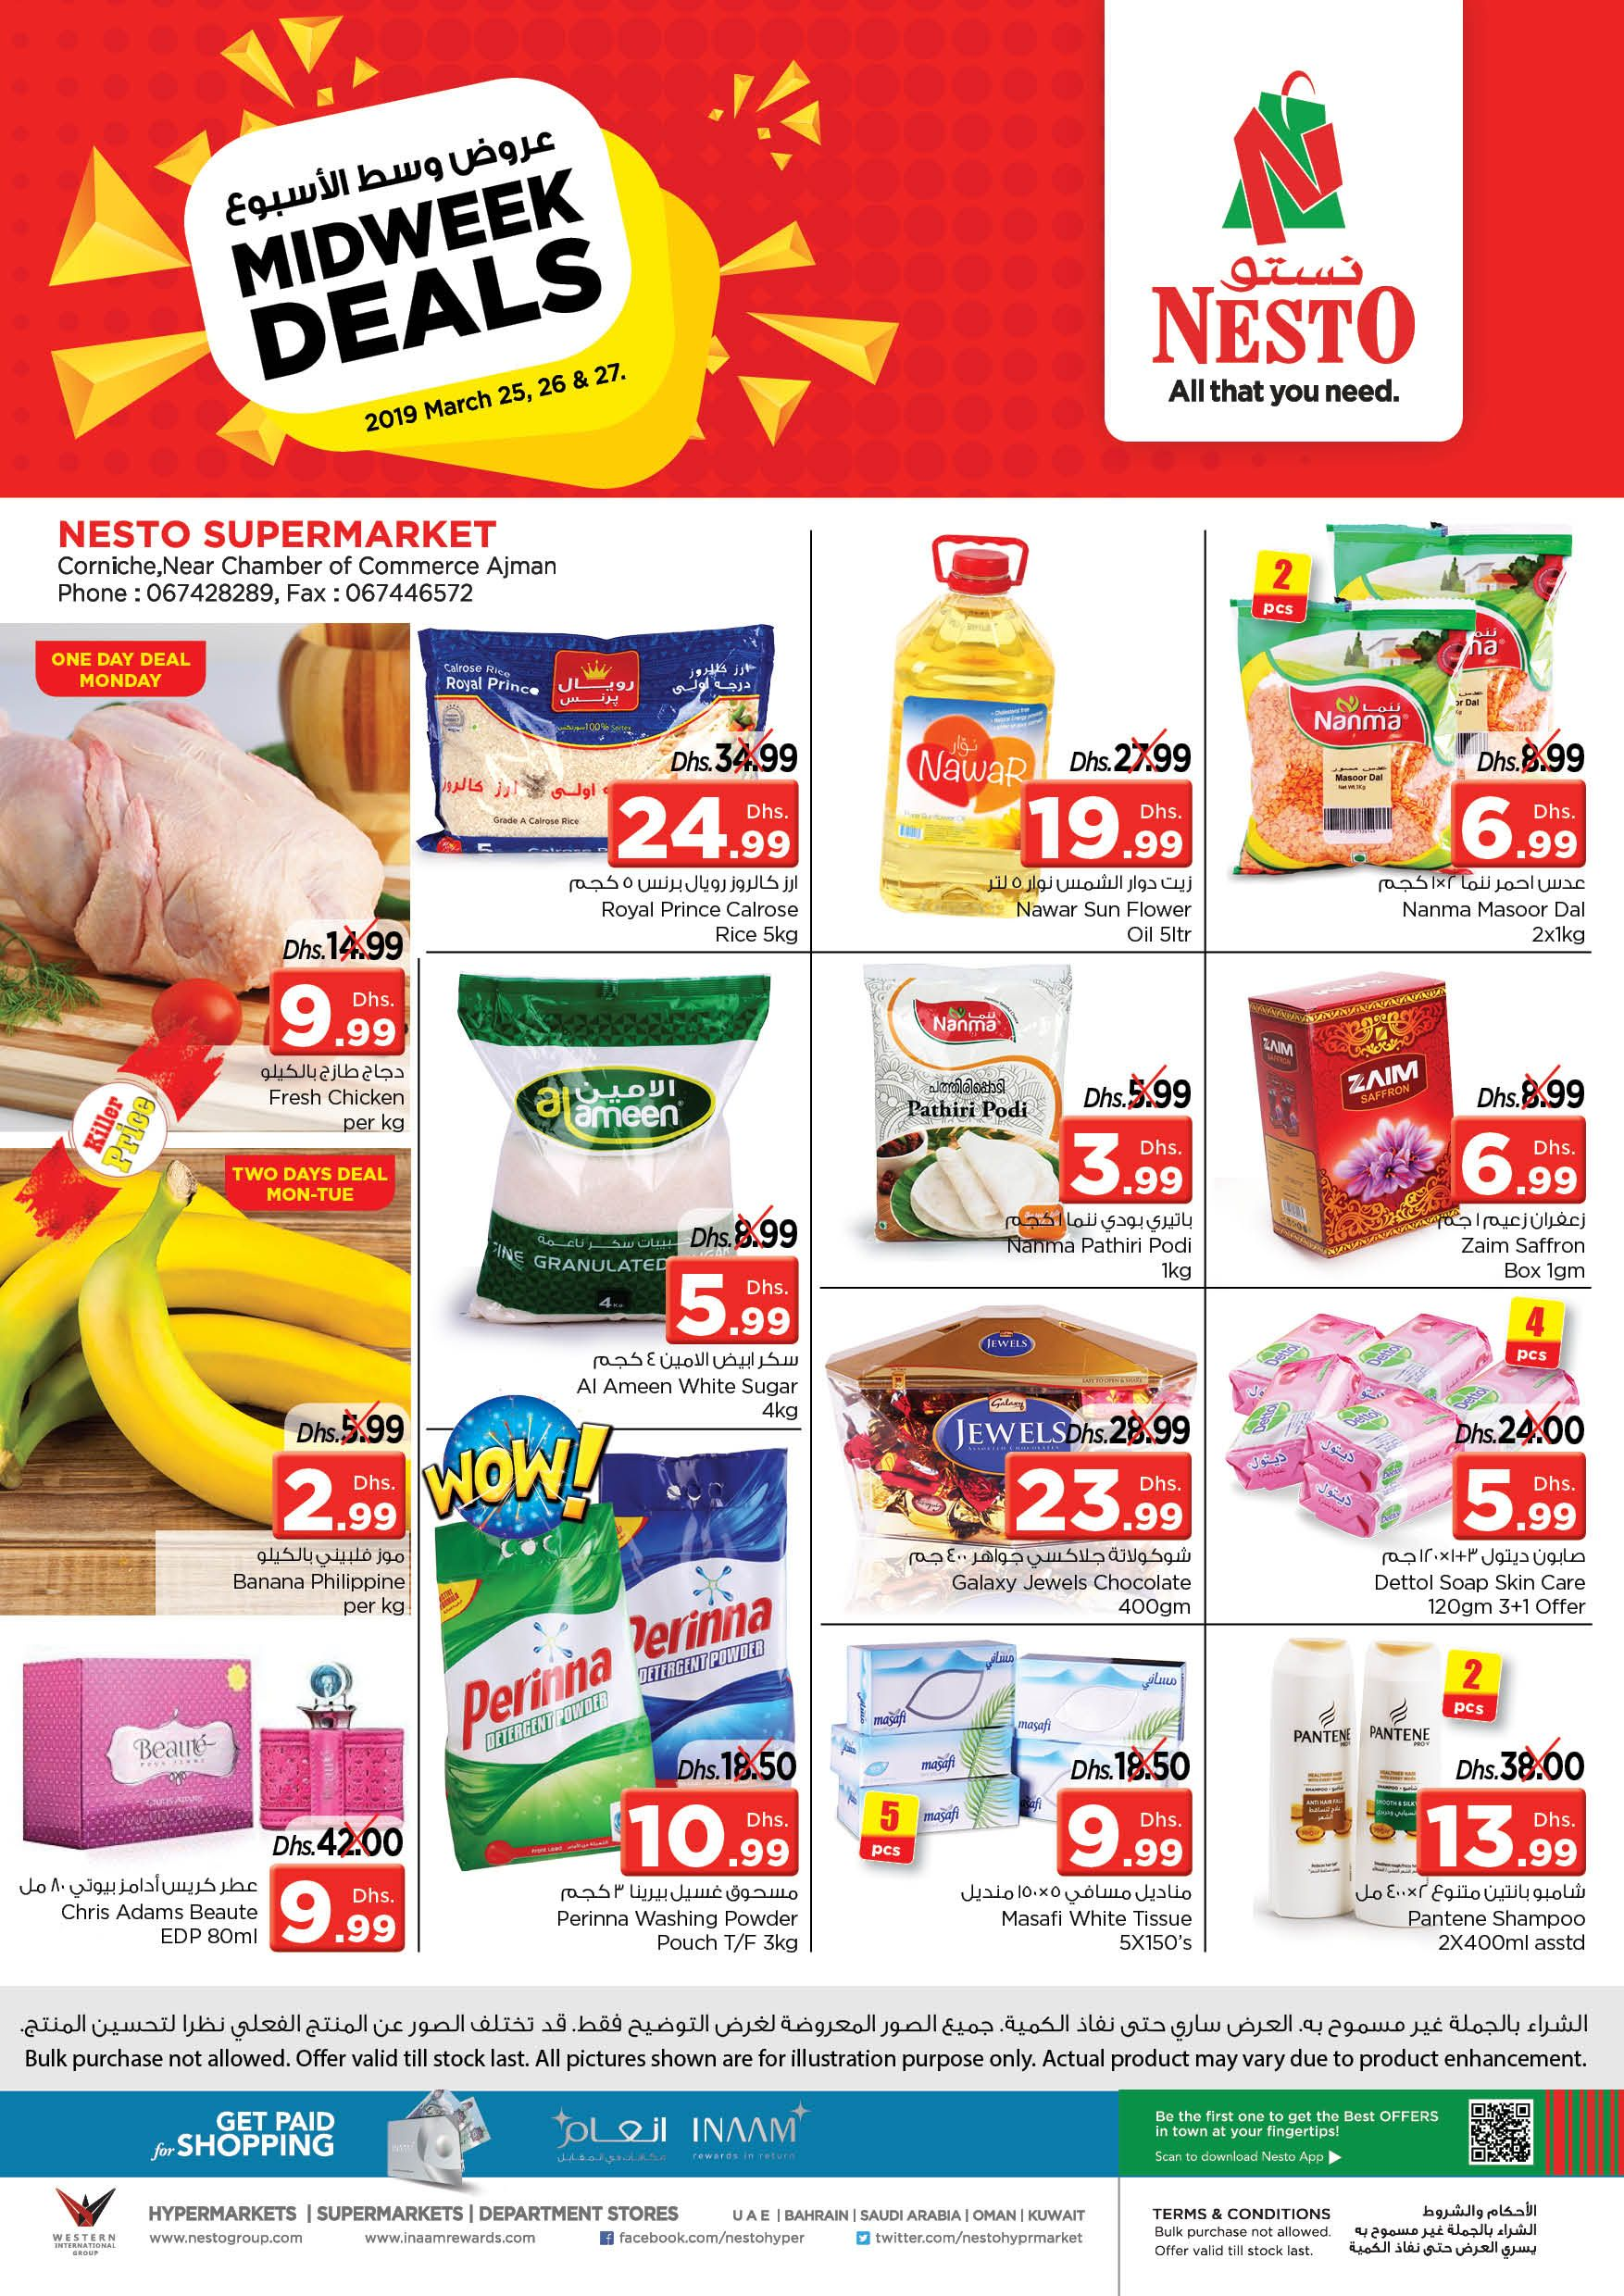 Midweek Deals  From 2019 Mar 25 to Mar 27  Offer available at Nesto